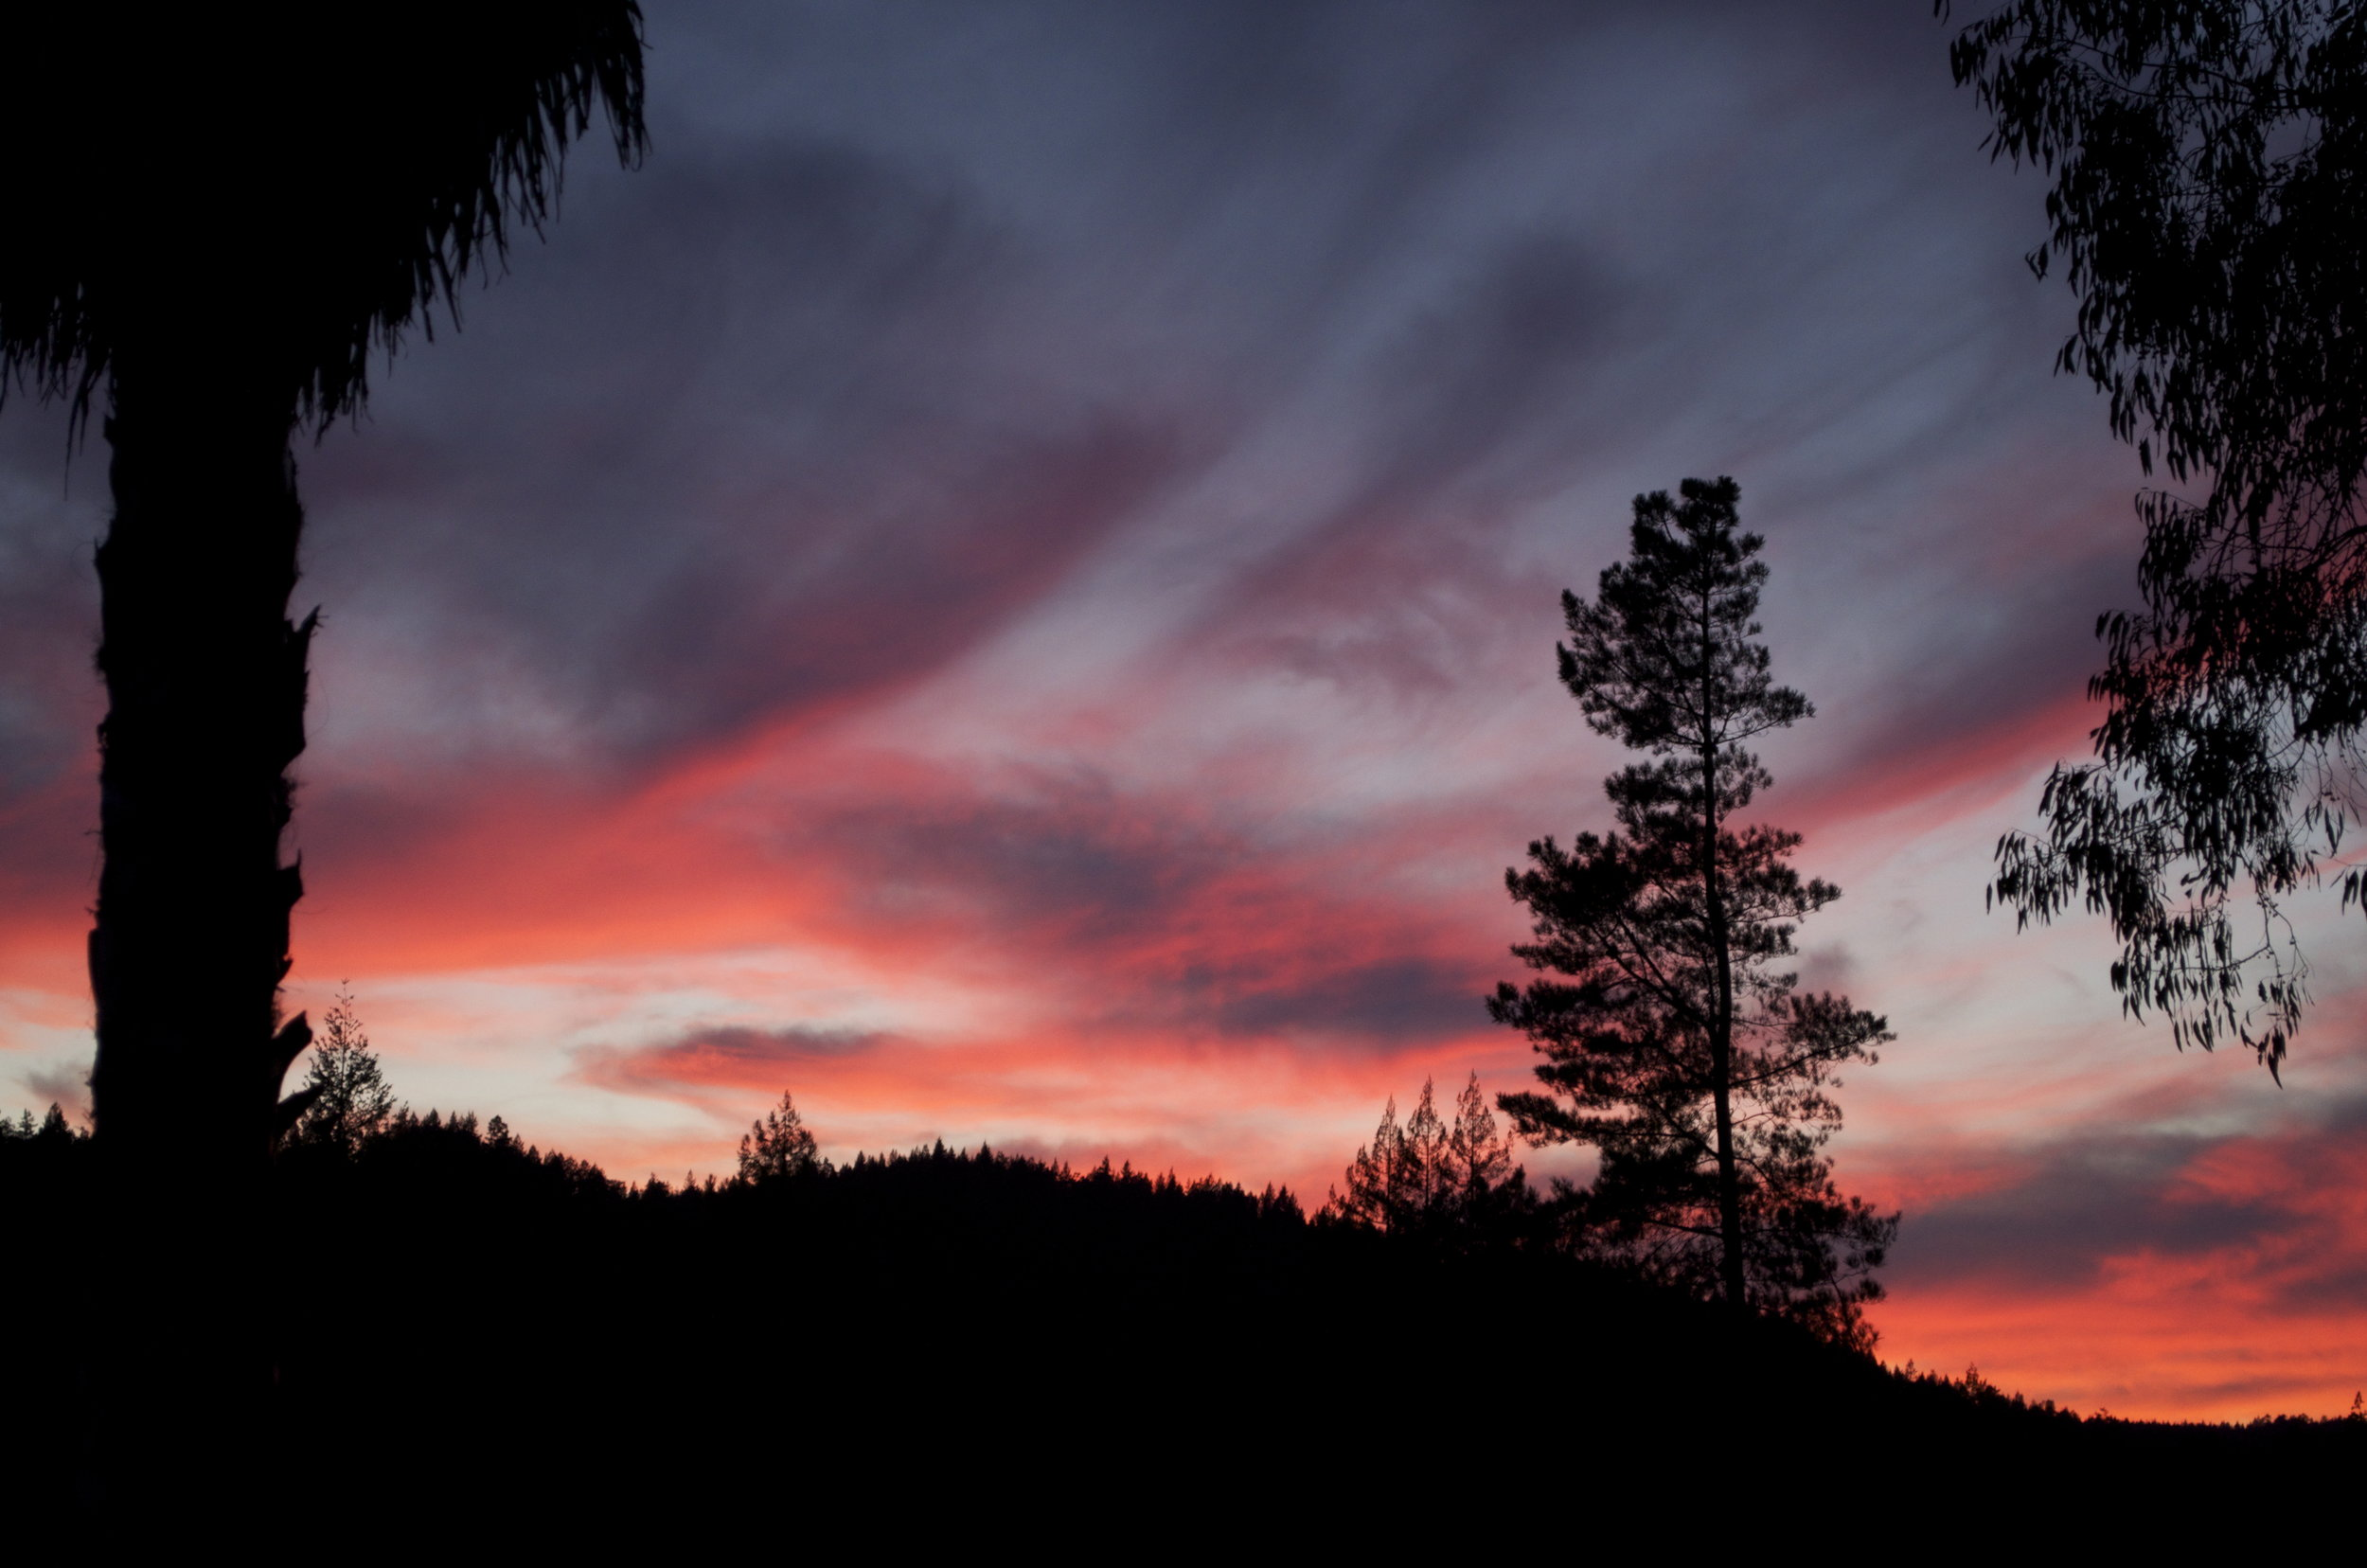 A view of the sunset over the hills of Anderson Valley from Indian Creek Inn